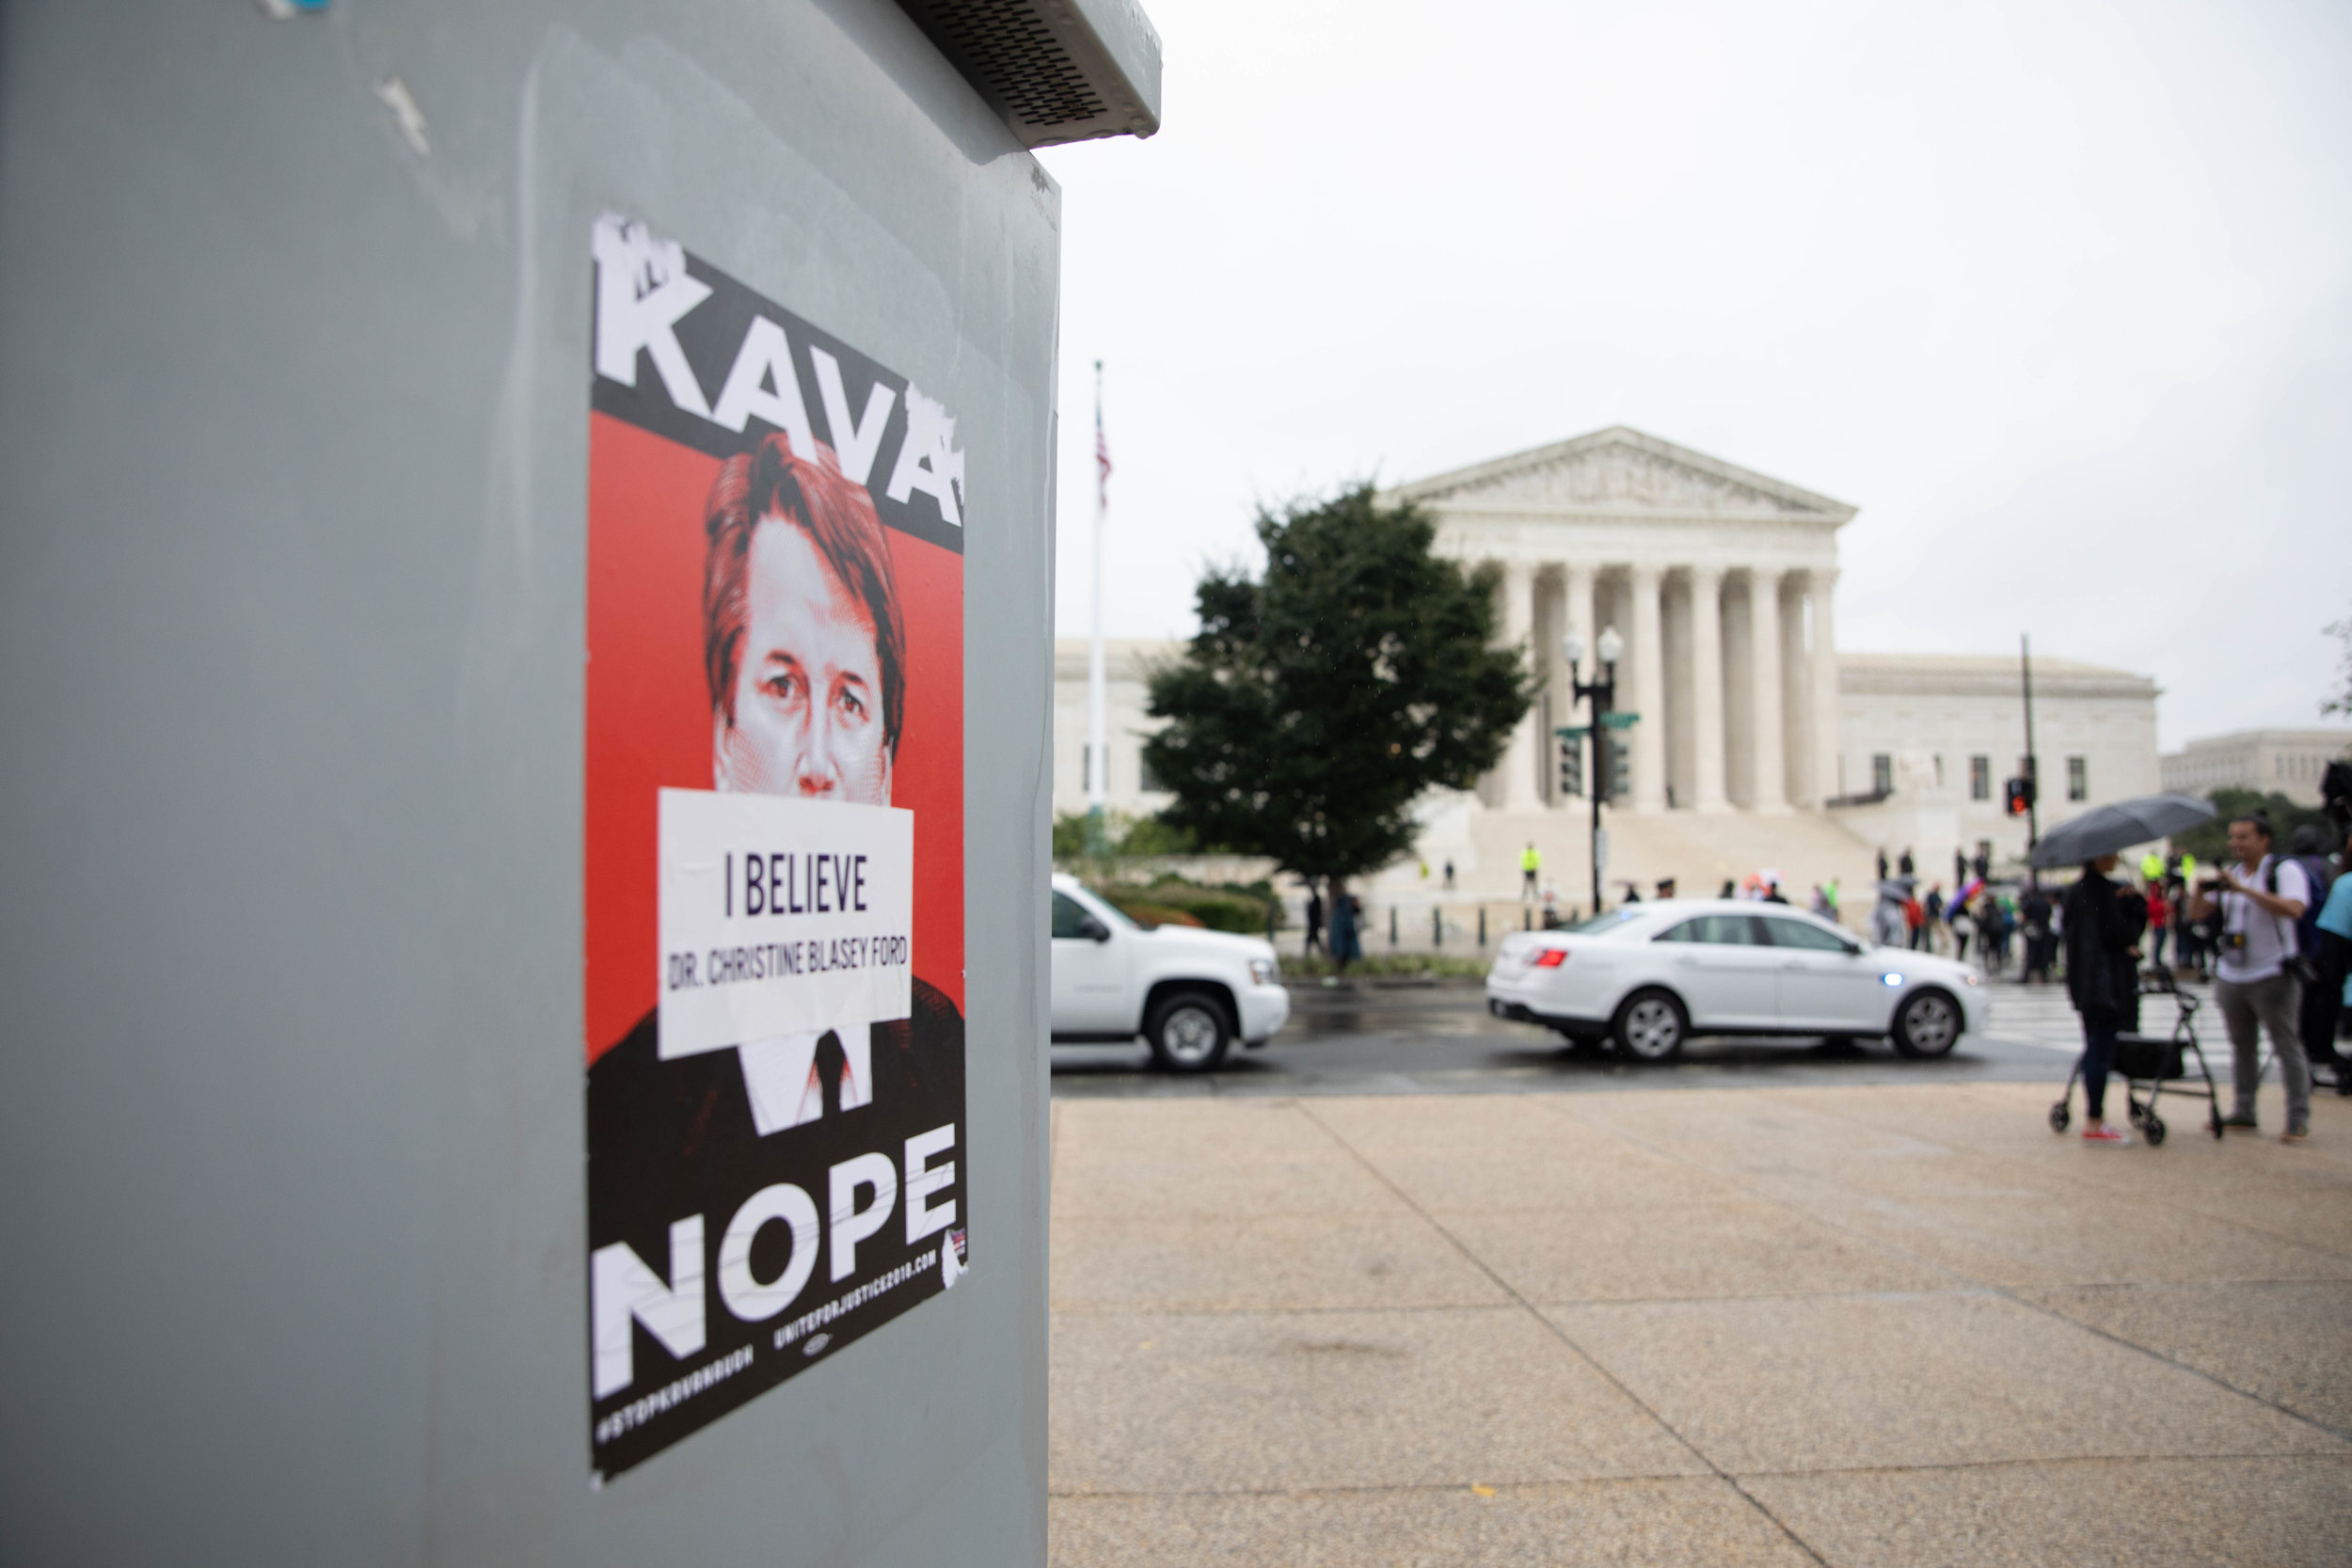 Cancel Kavanaugh 9.27.18- Rachael Warriner-144.jpg